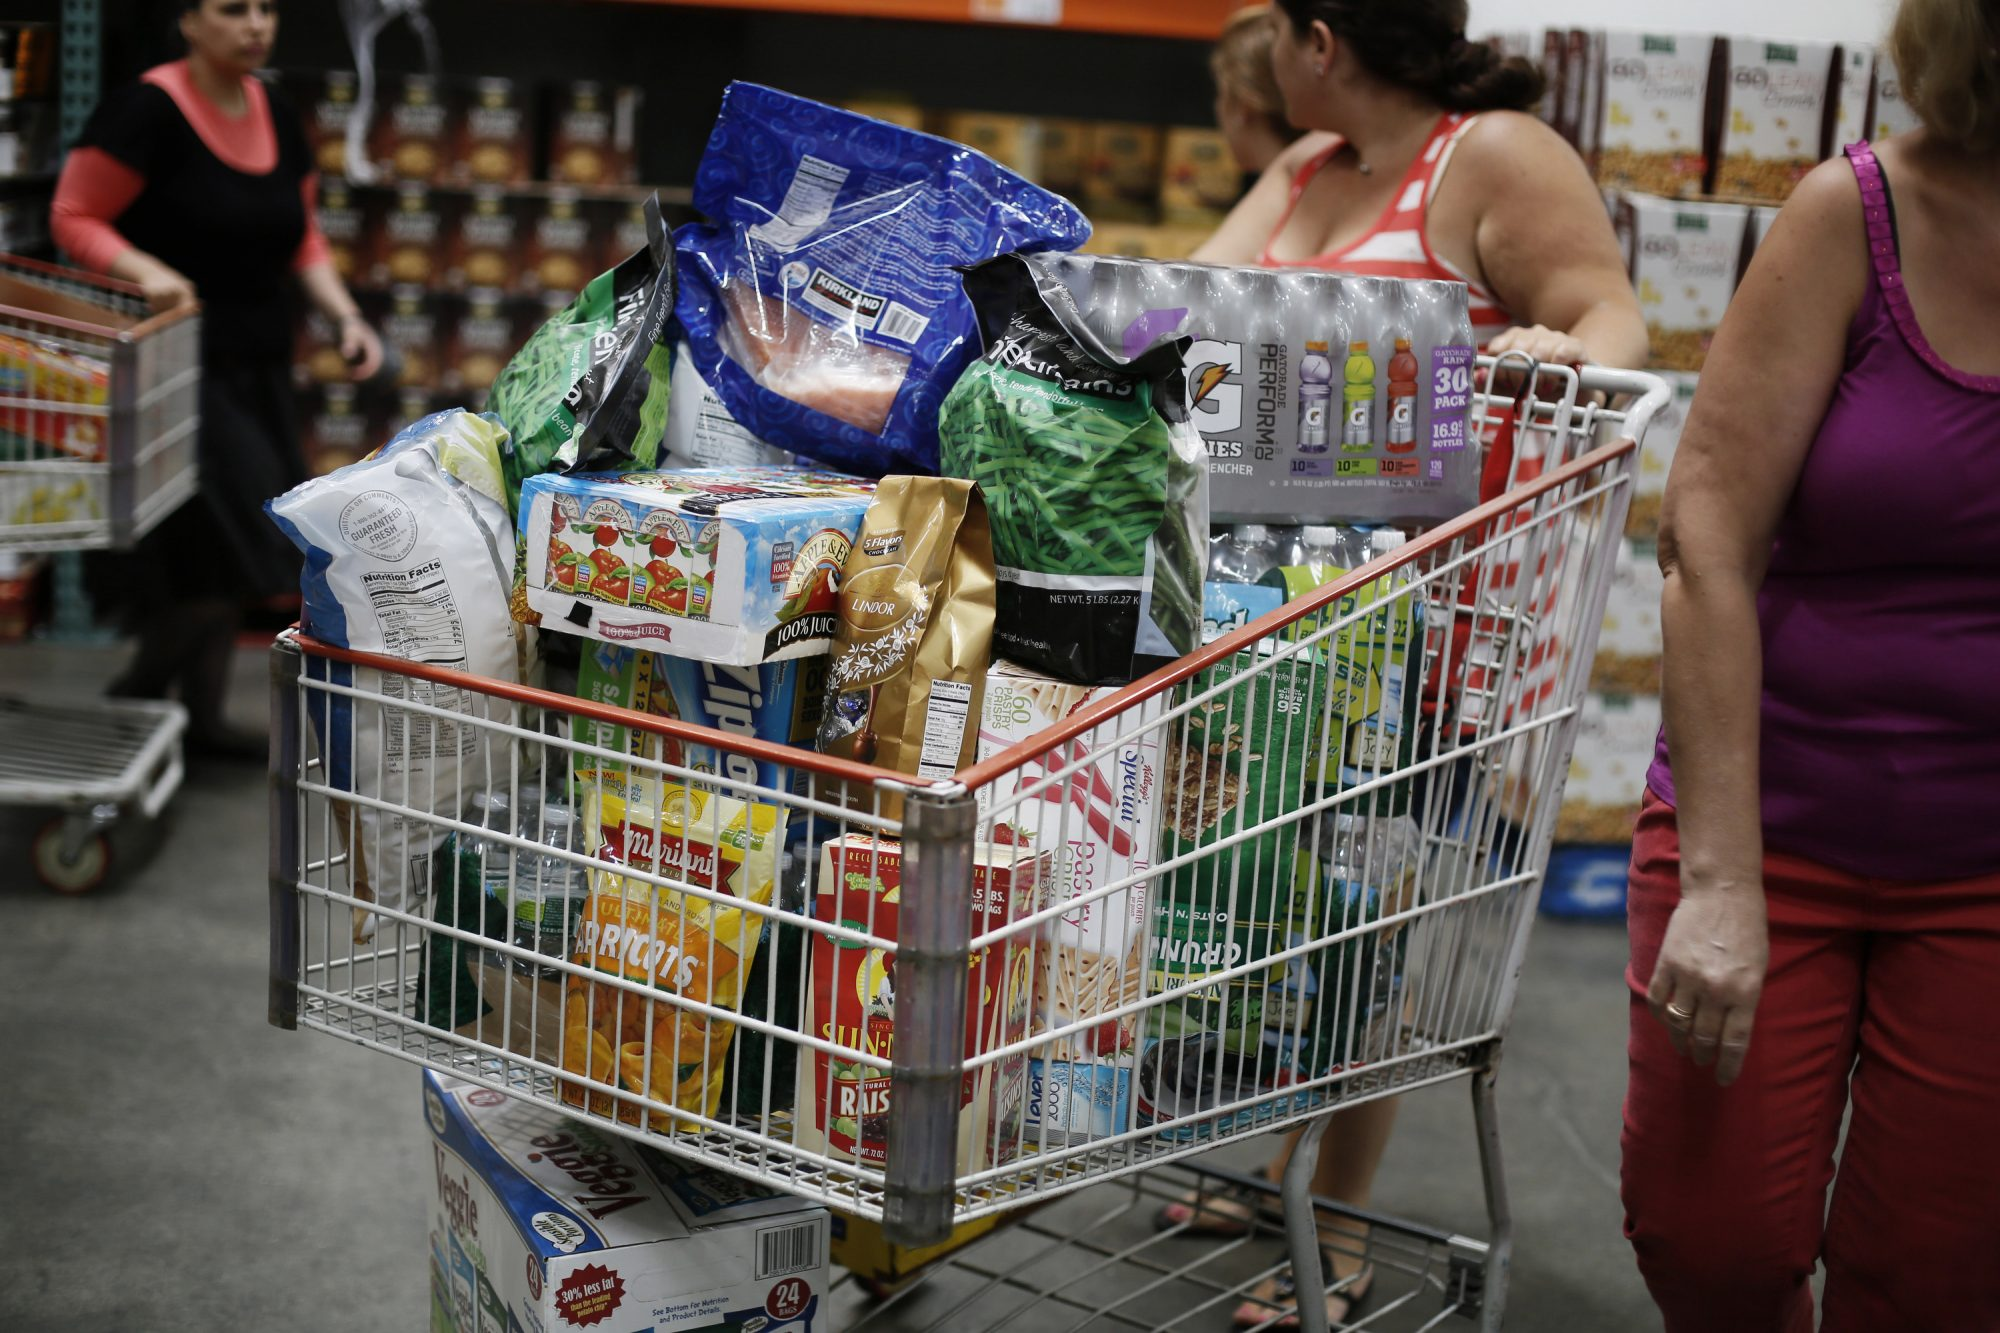 10 Costco Products That Obsessives Swear By